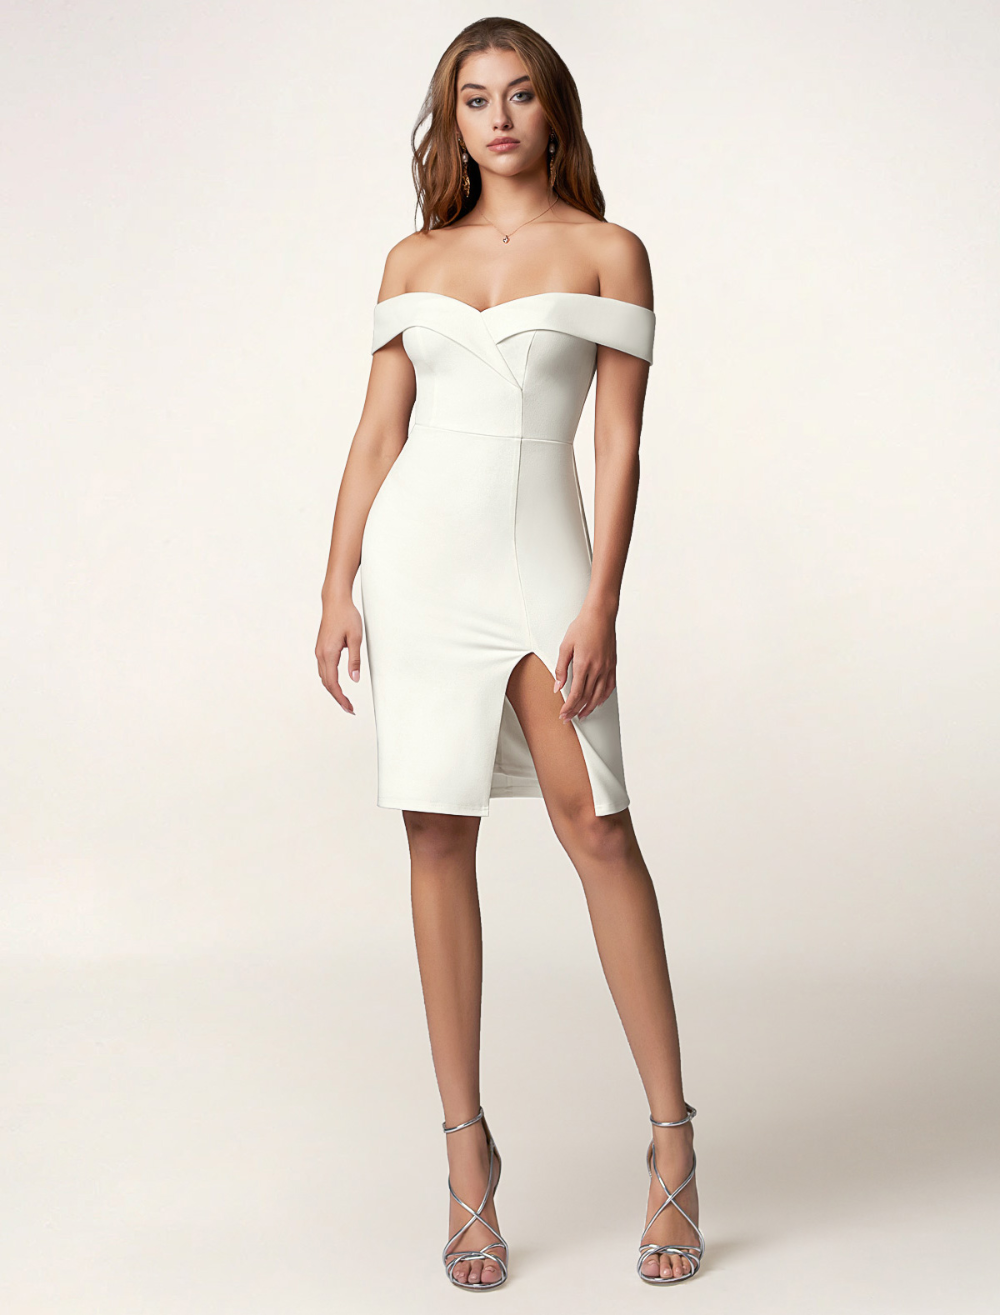 Little White Dress Collection White Lace Bodycon Dress Little White Dresses White Mini Dress [ 1315 x 1000 Pixel ]